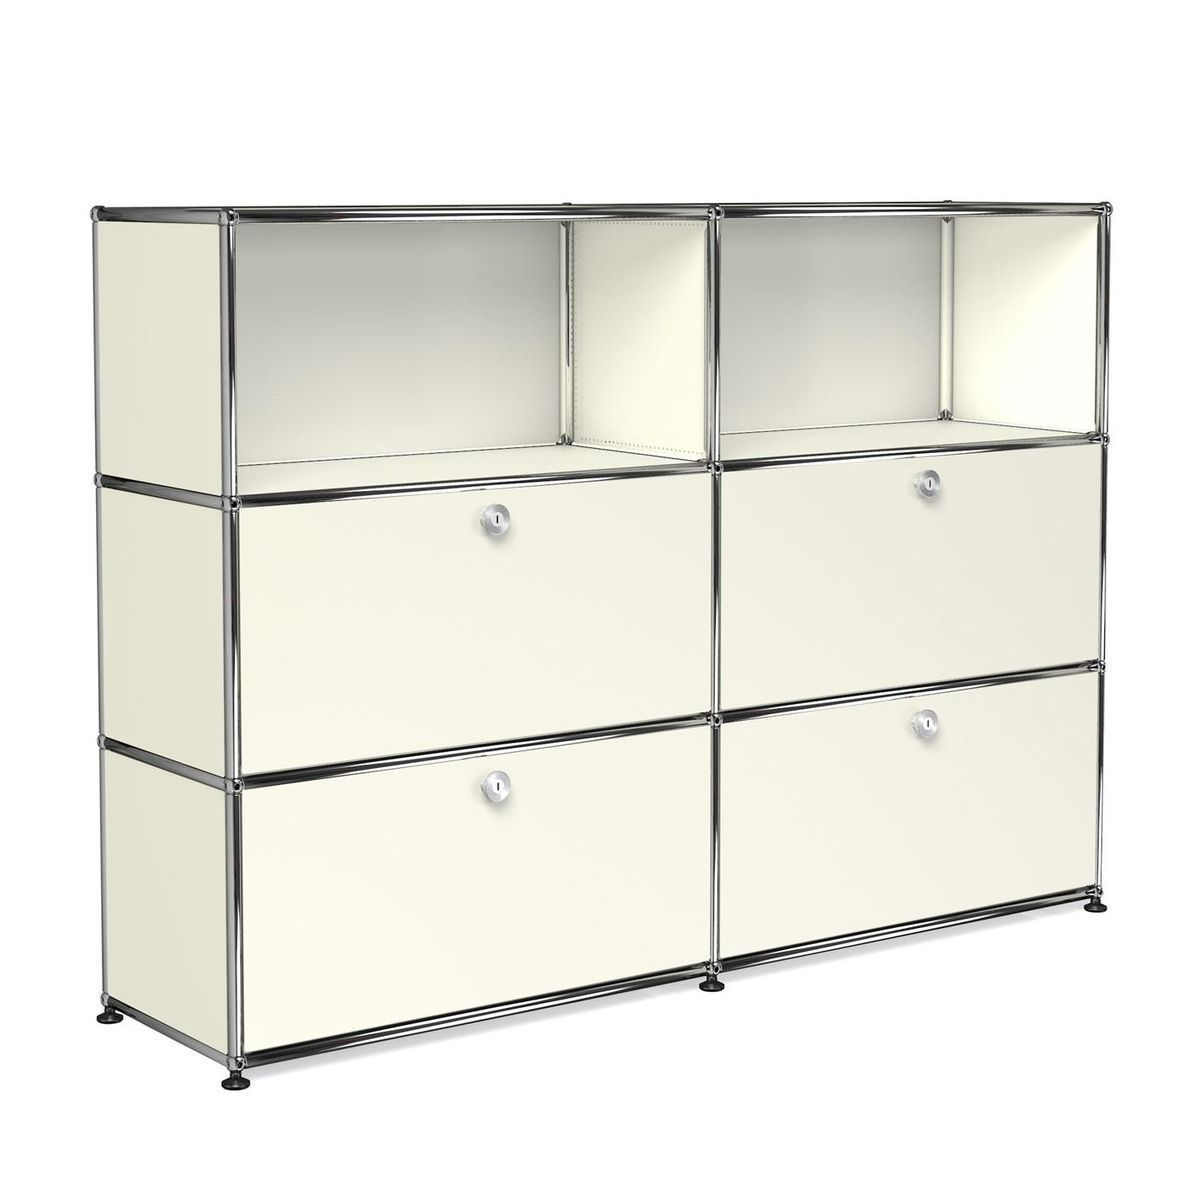 usm highboard met 4 klapdeuren usm haller. Black Bedroom Furniture Sets. Home Design Ideas